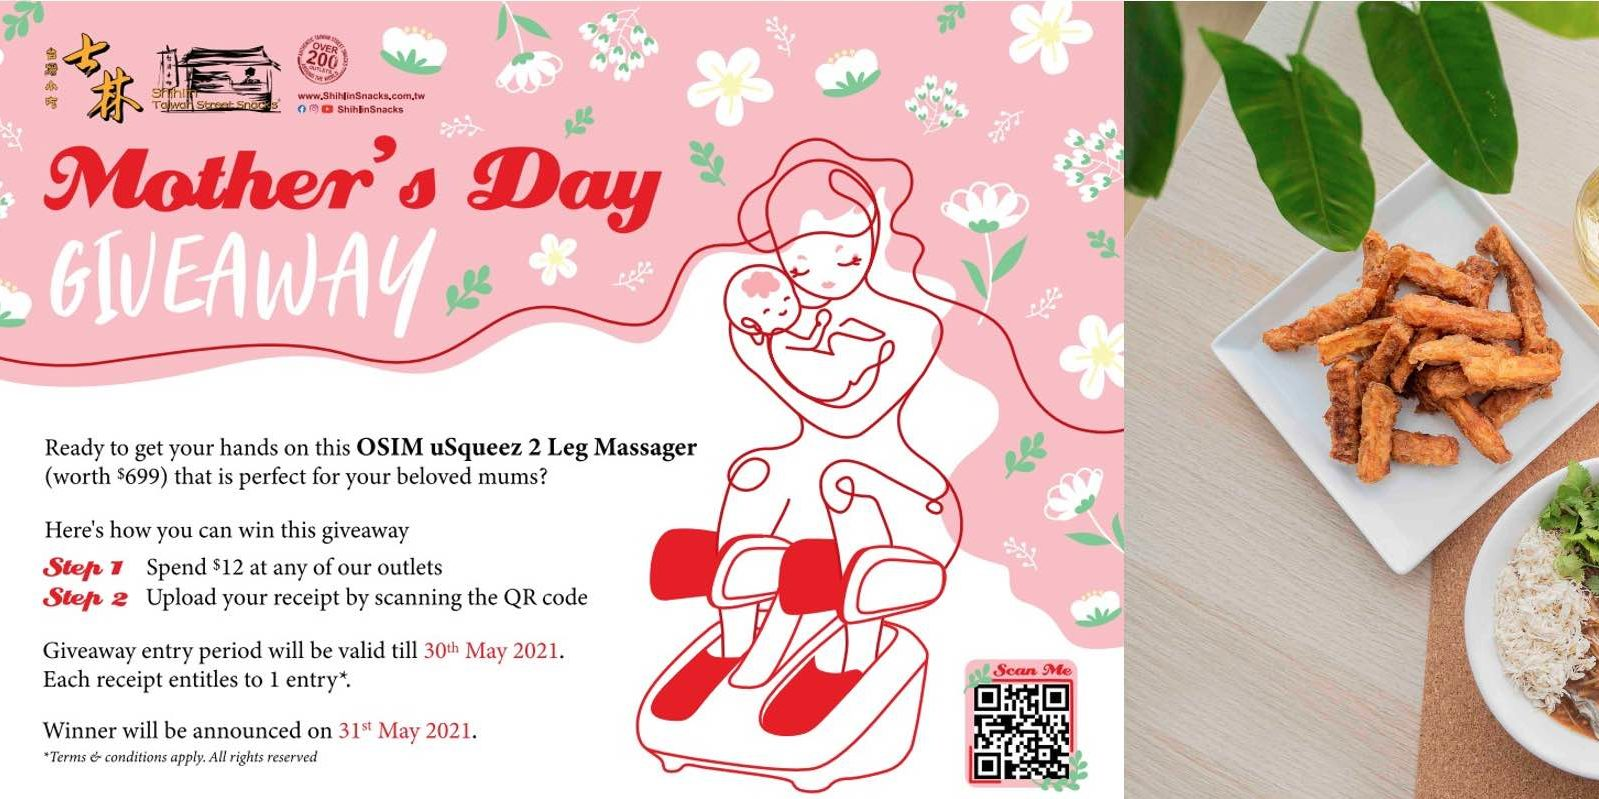 This Mother's Day, let Shihlin Taiwan Street Snacks pamper your mom with an ultimate giveaway!